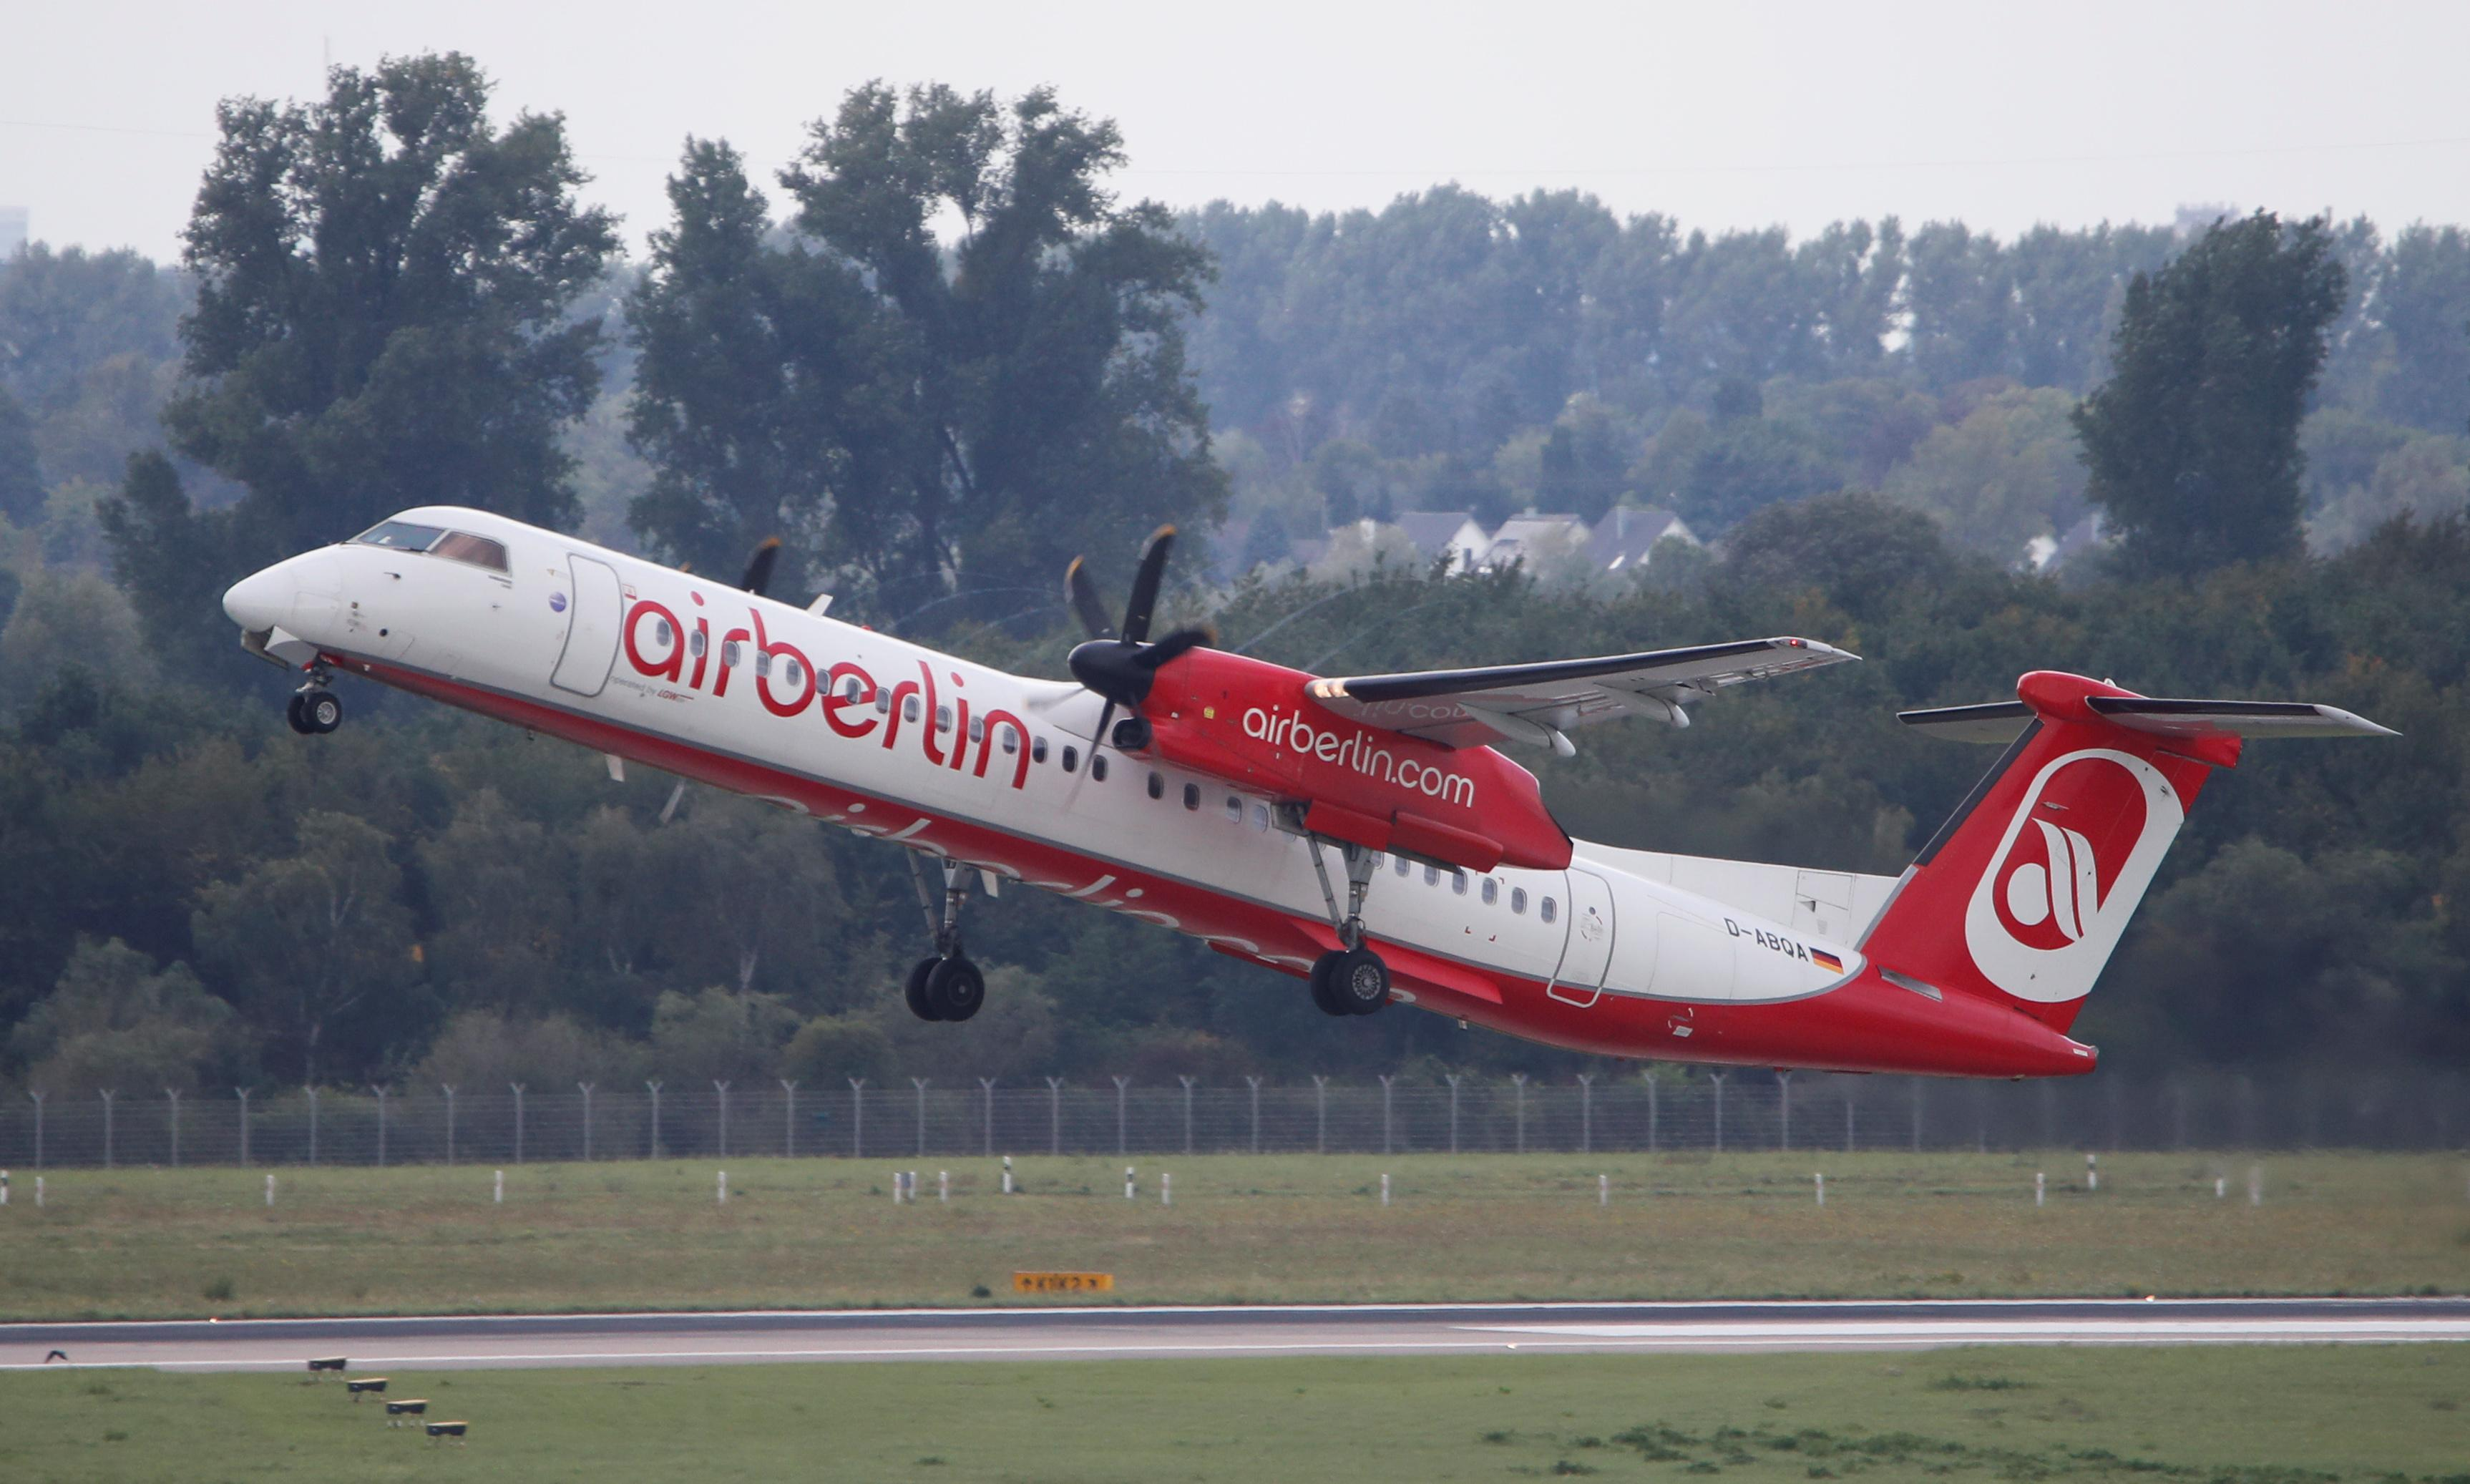 Air Berlin To Hold Carve Up Talks With Lufthansa Easyjet Reuters